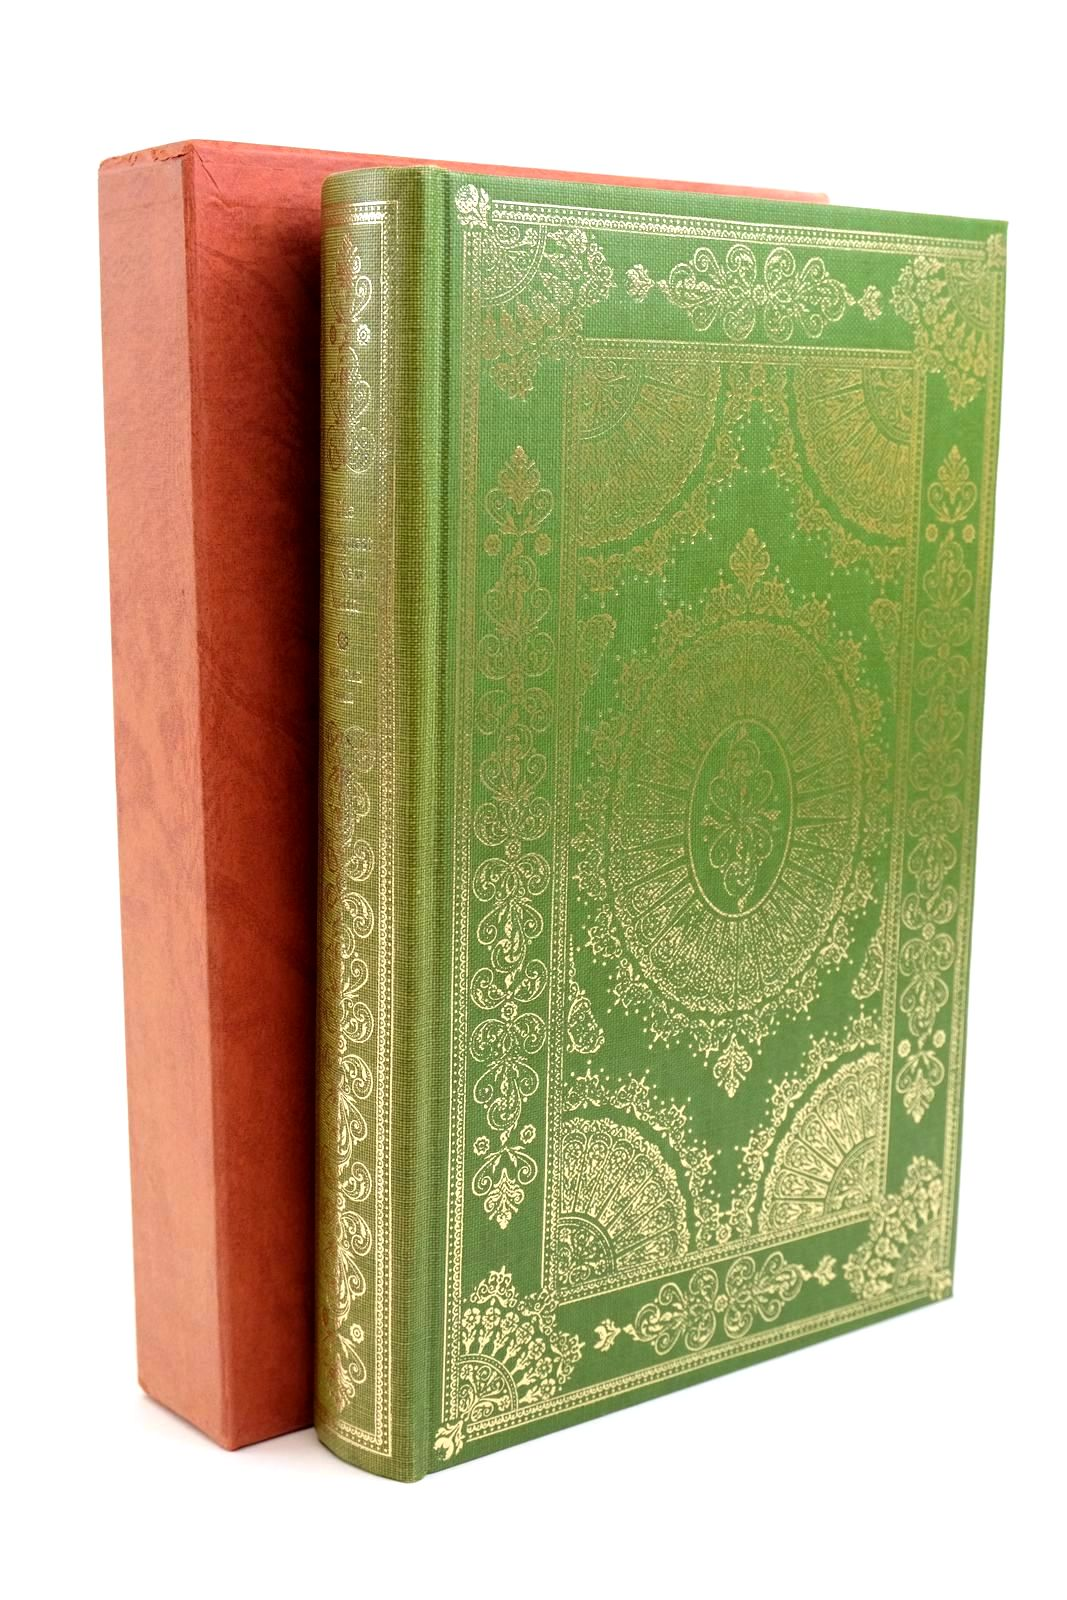 Photo of THE CONQUEST OF NEW SPAIN written by Diaz, Bernal Cohen, J.M. published by Folio Society (STOCK CODE: 1321373)  for sale by Stella & Rose's Books